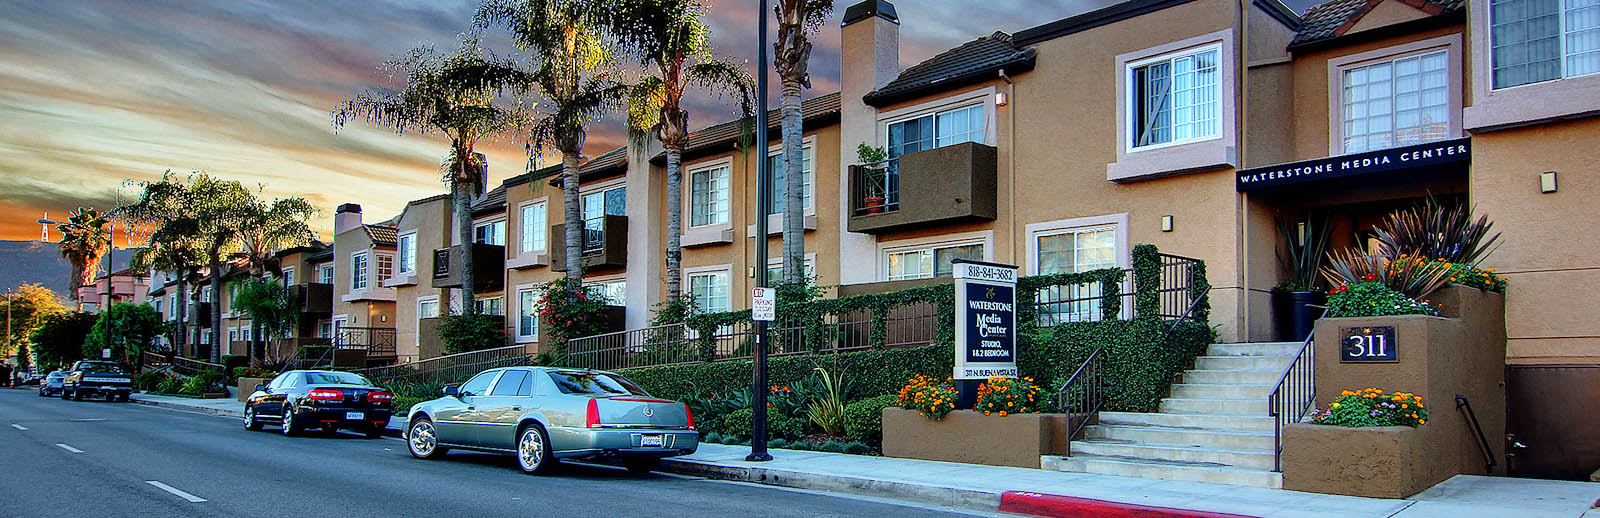 Waterstone media center apartments burbank